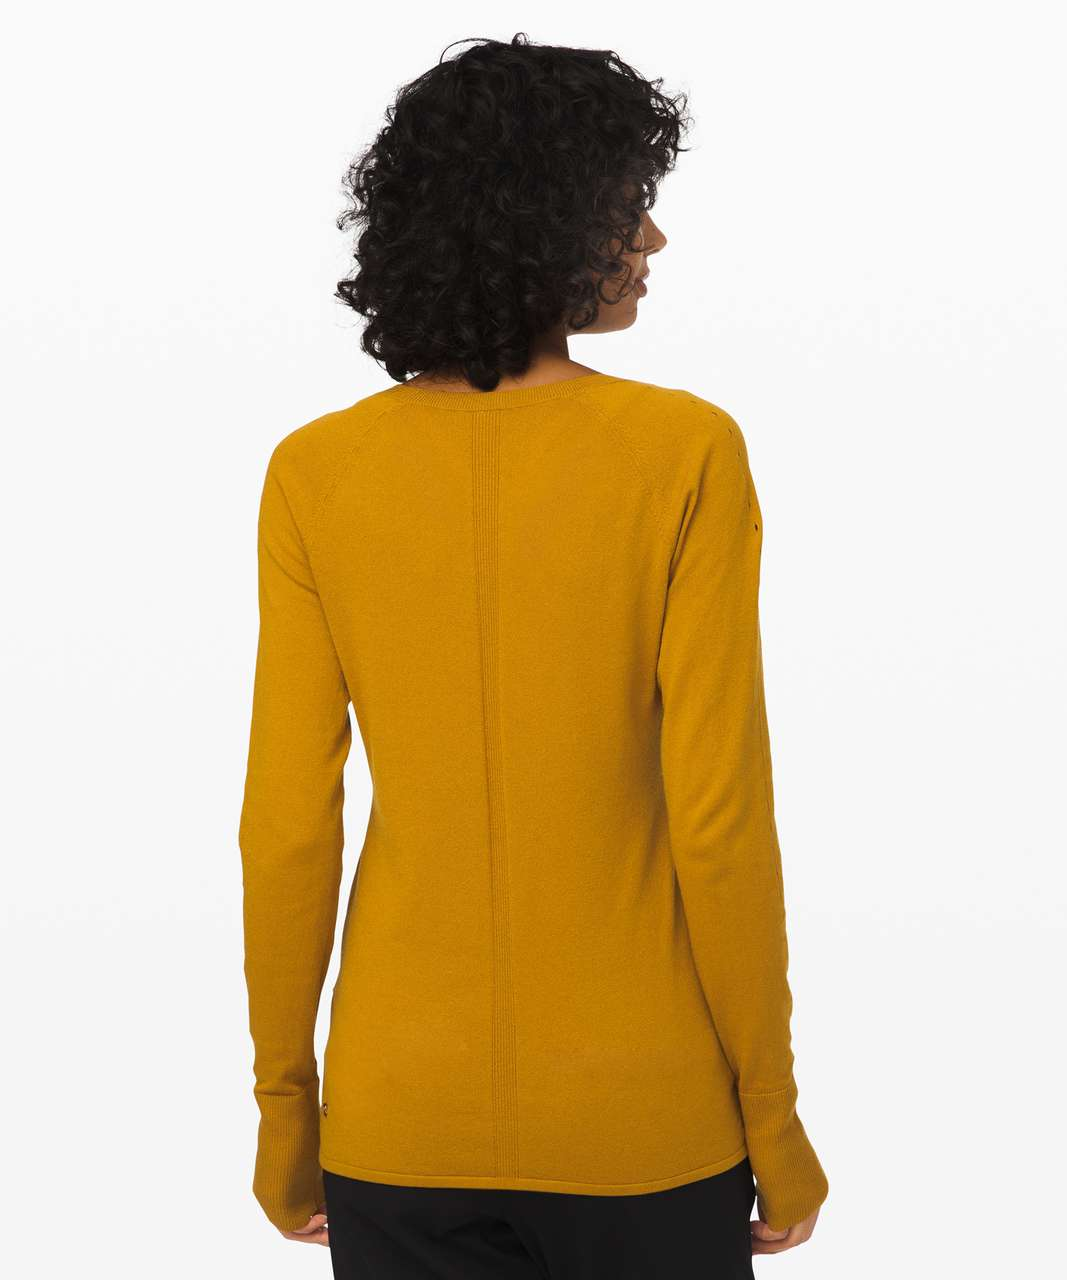 Lululemon Stand Steady Crew Sweater - Fools Gold